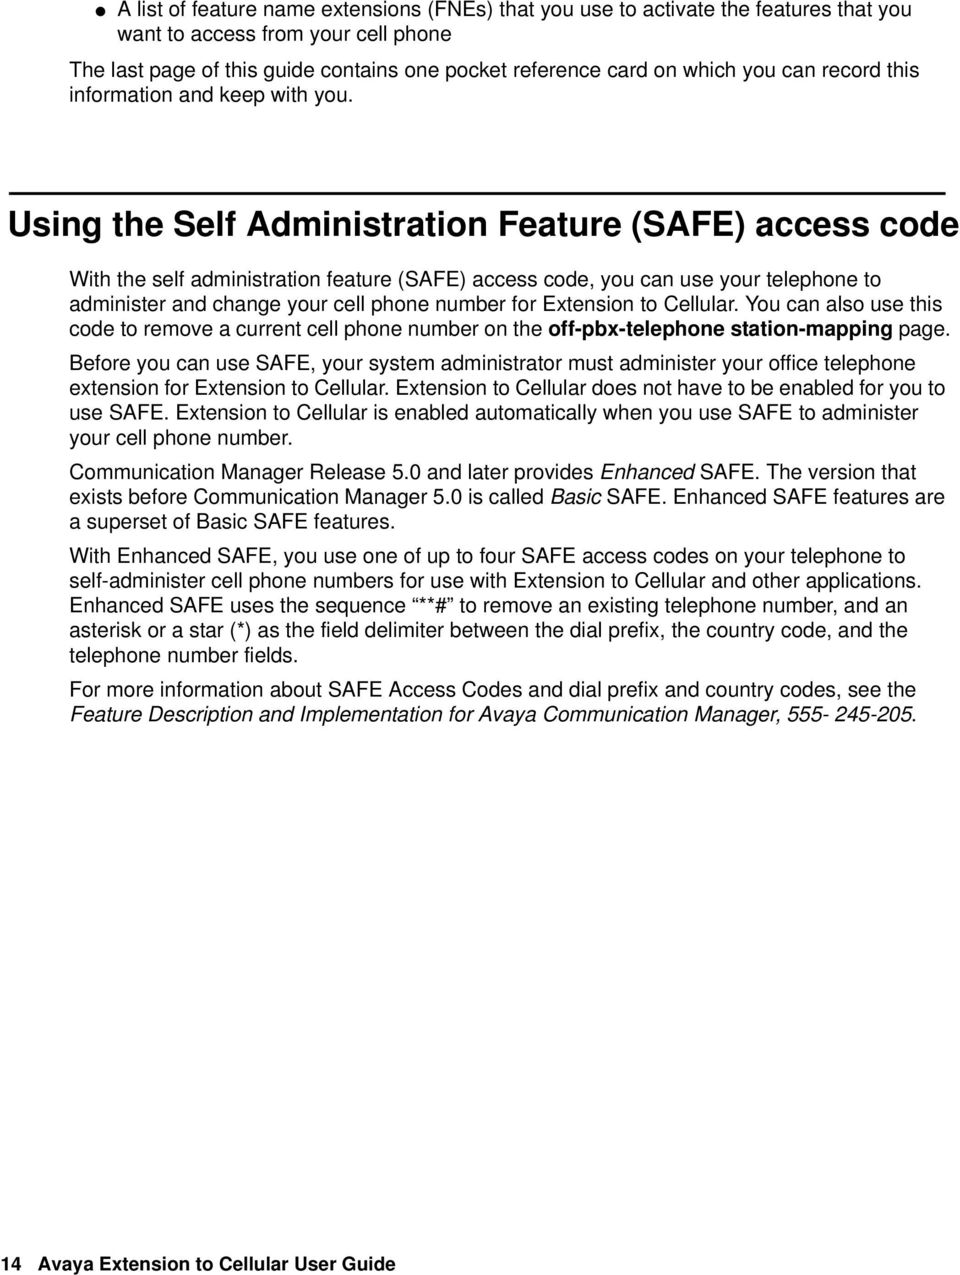 Using the Self Administration Feature (SAFE) access code With the self administration feature (SAFE) access code, you can use your telephone to administer and change your cell phone number for